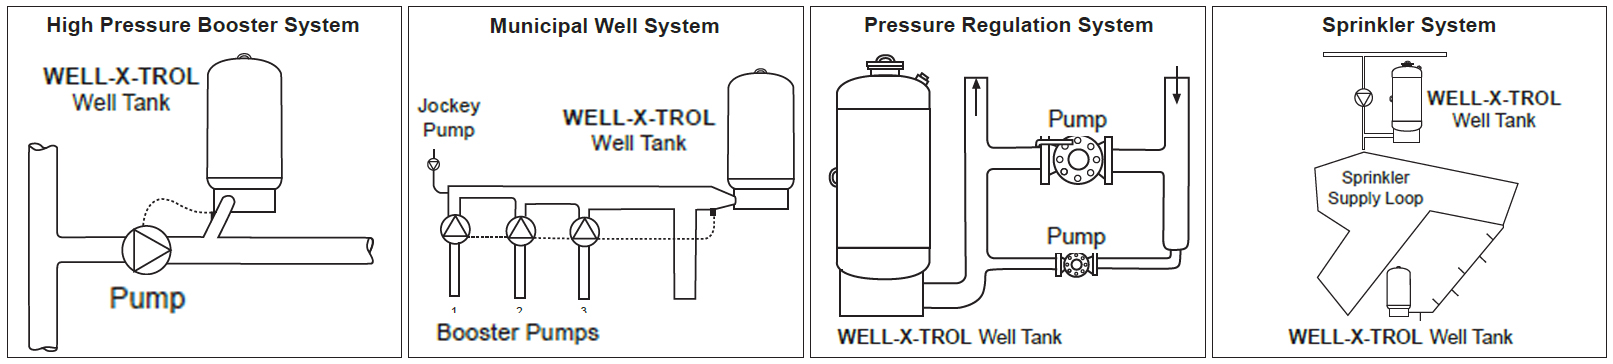 Amtrol Well-X-Trol 158 Gallon Commercial Pressure Tank - WX-451 on